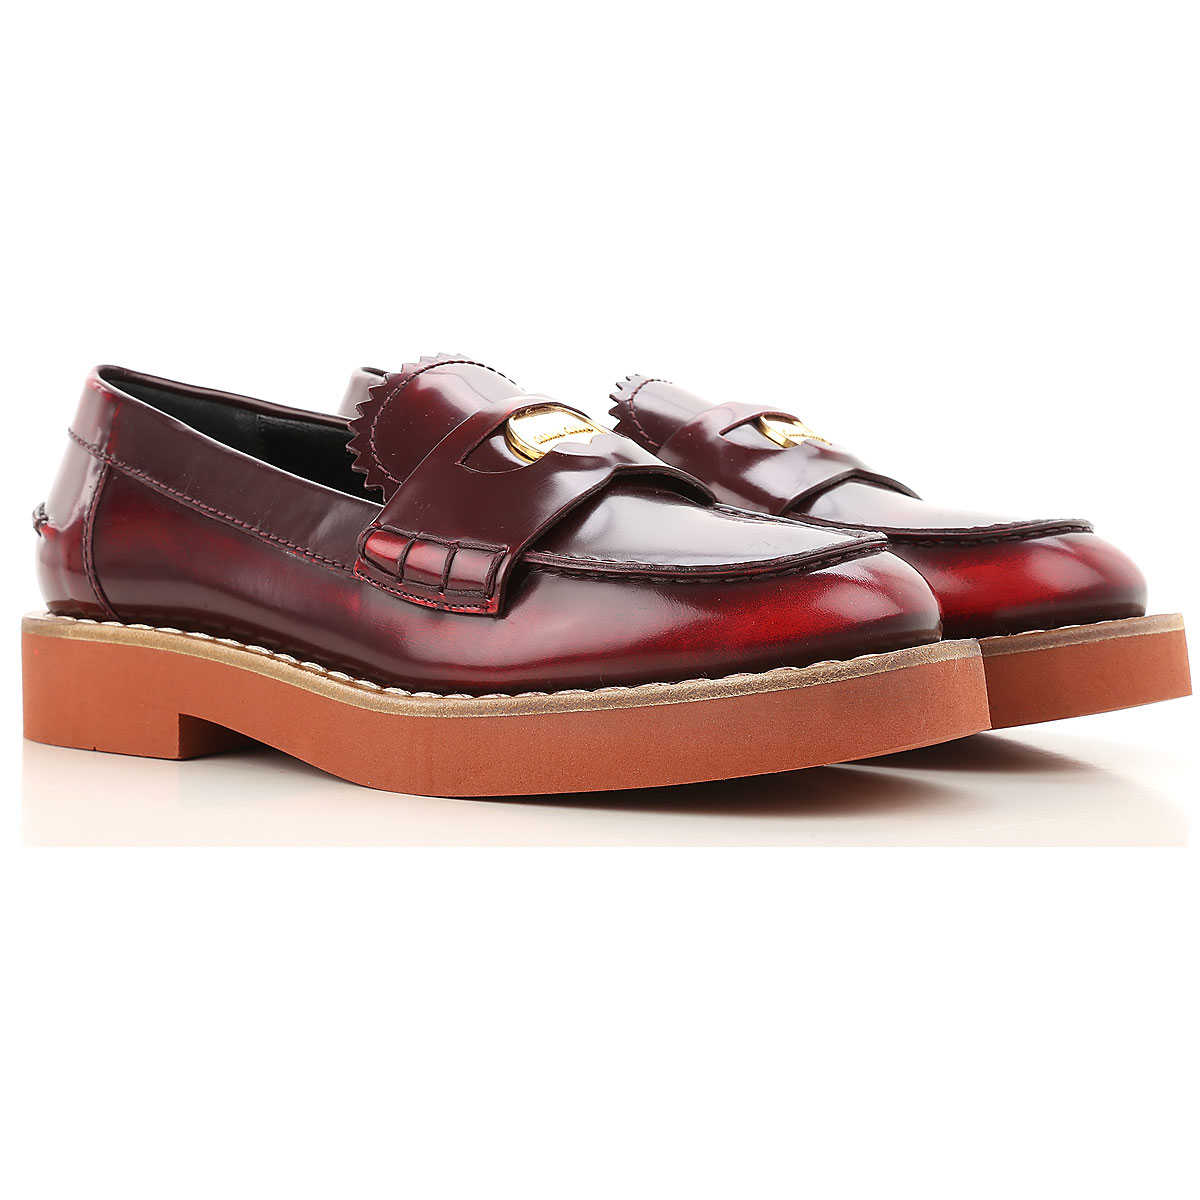 Miu Miu Loafers for Women On Sale in Outlet